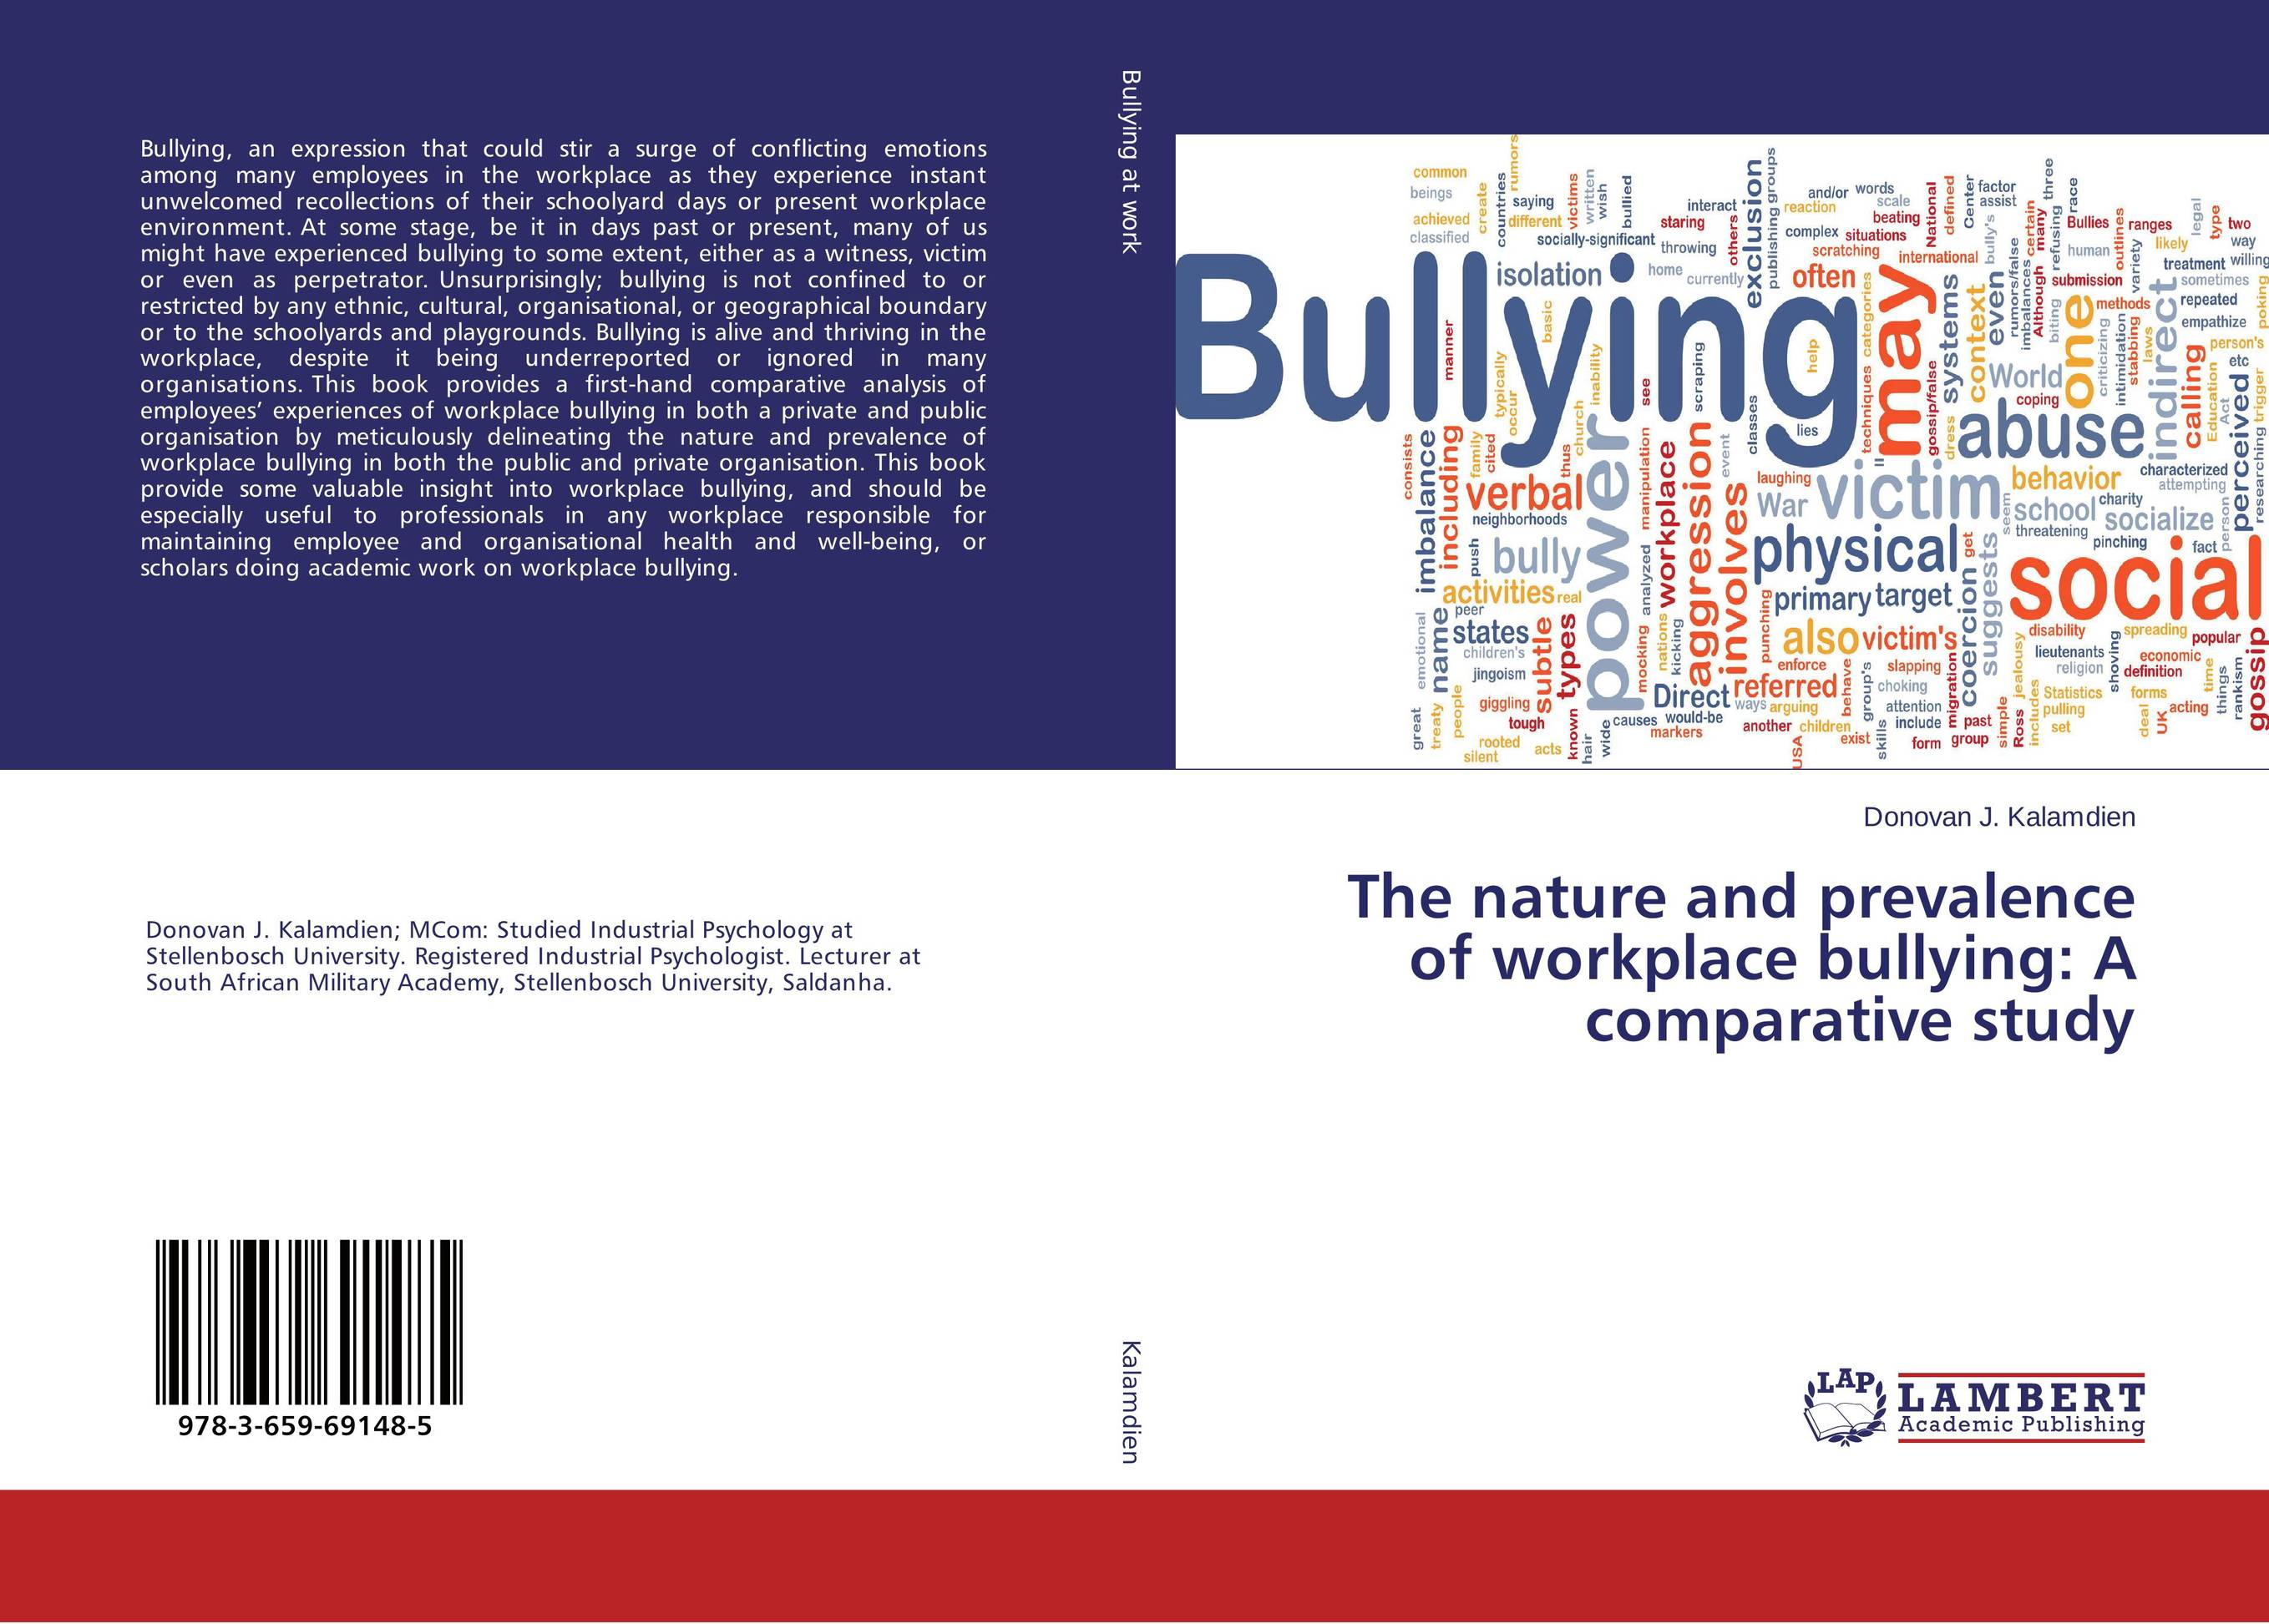 The nature and prevalence of workplace bullying: A comparative study